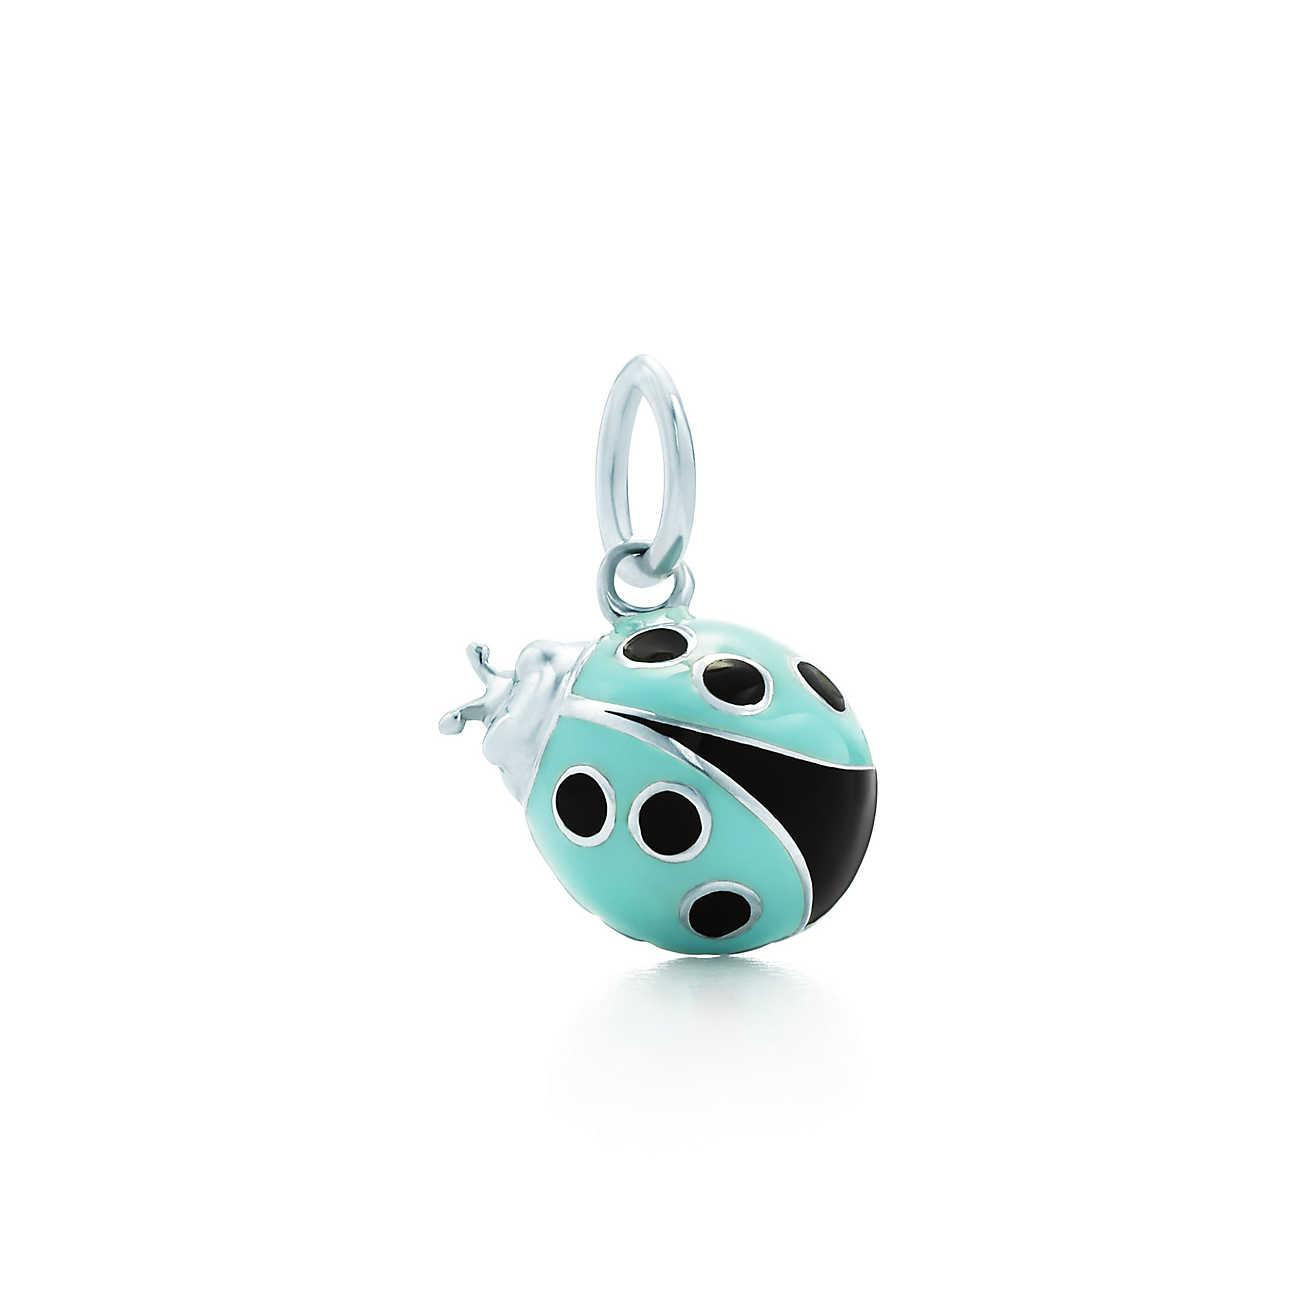 078886dc8190 Tiffany   Co. Women s Metallic Ladybug Charm In Sterling Silver With Blue  And Black Enamel Finish ...